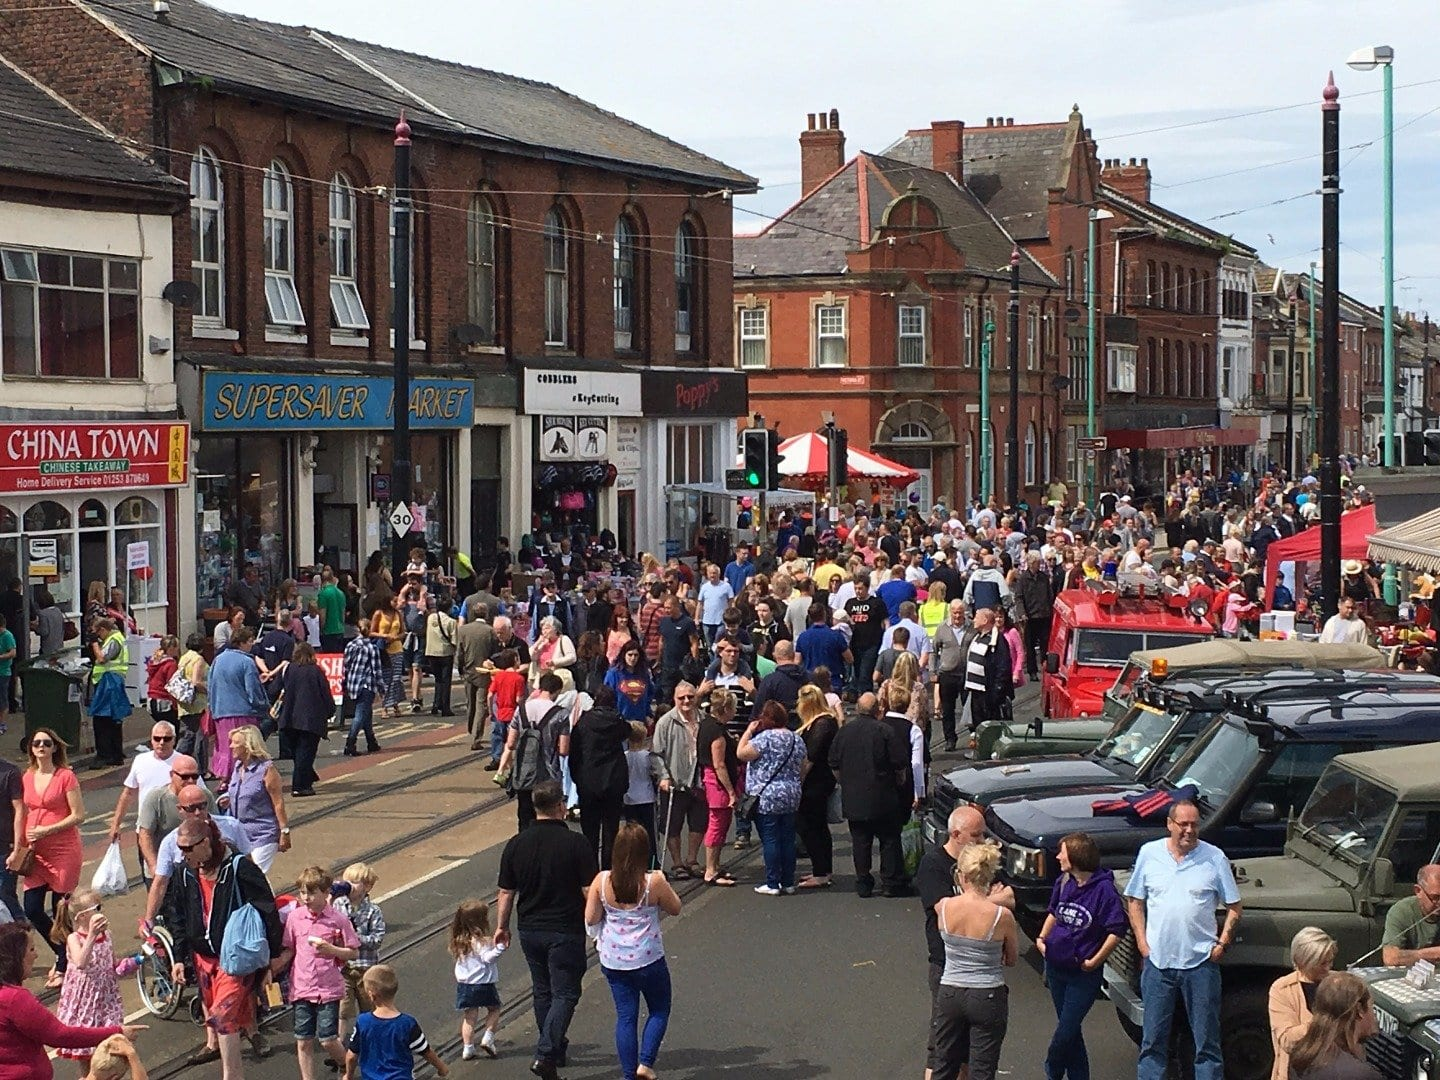 Crowded Lord Street at Fleetwood Tram Sunday